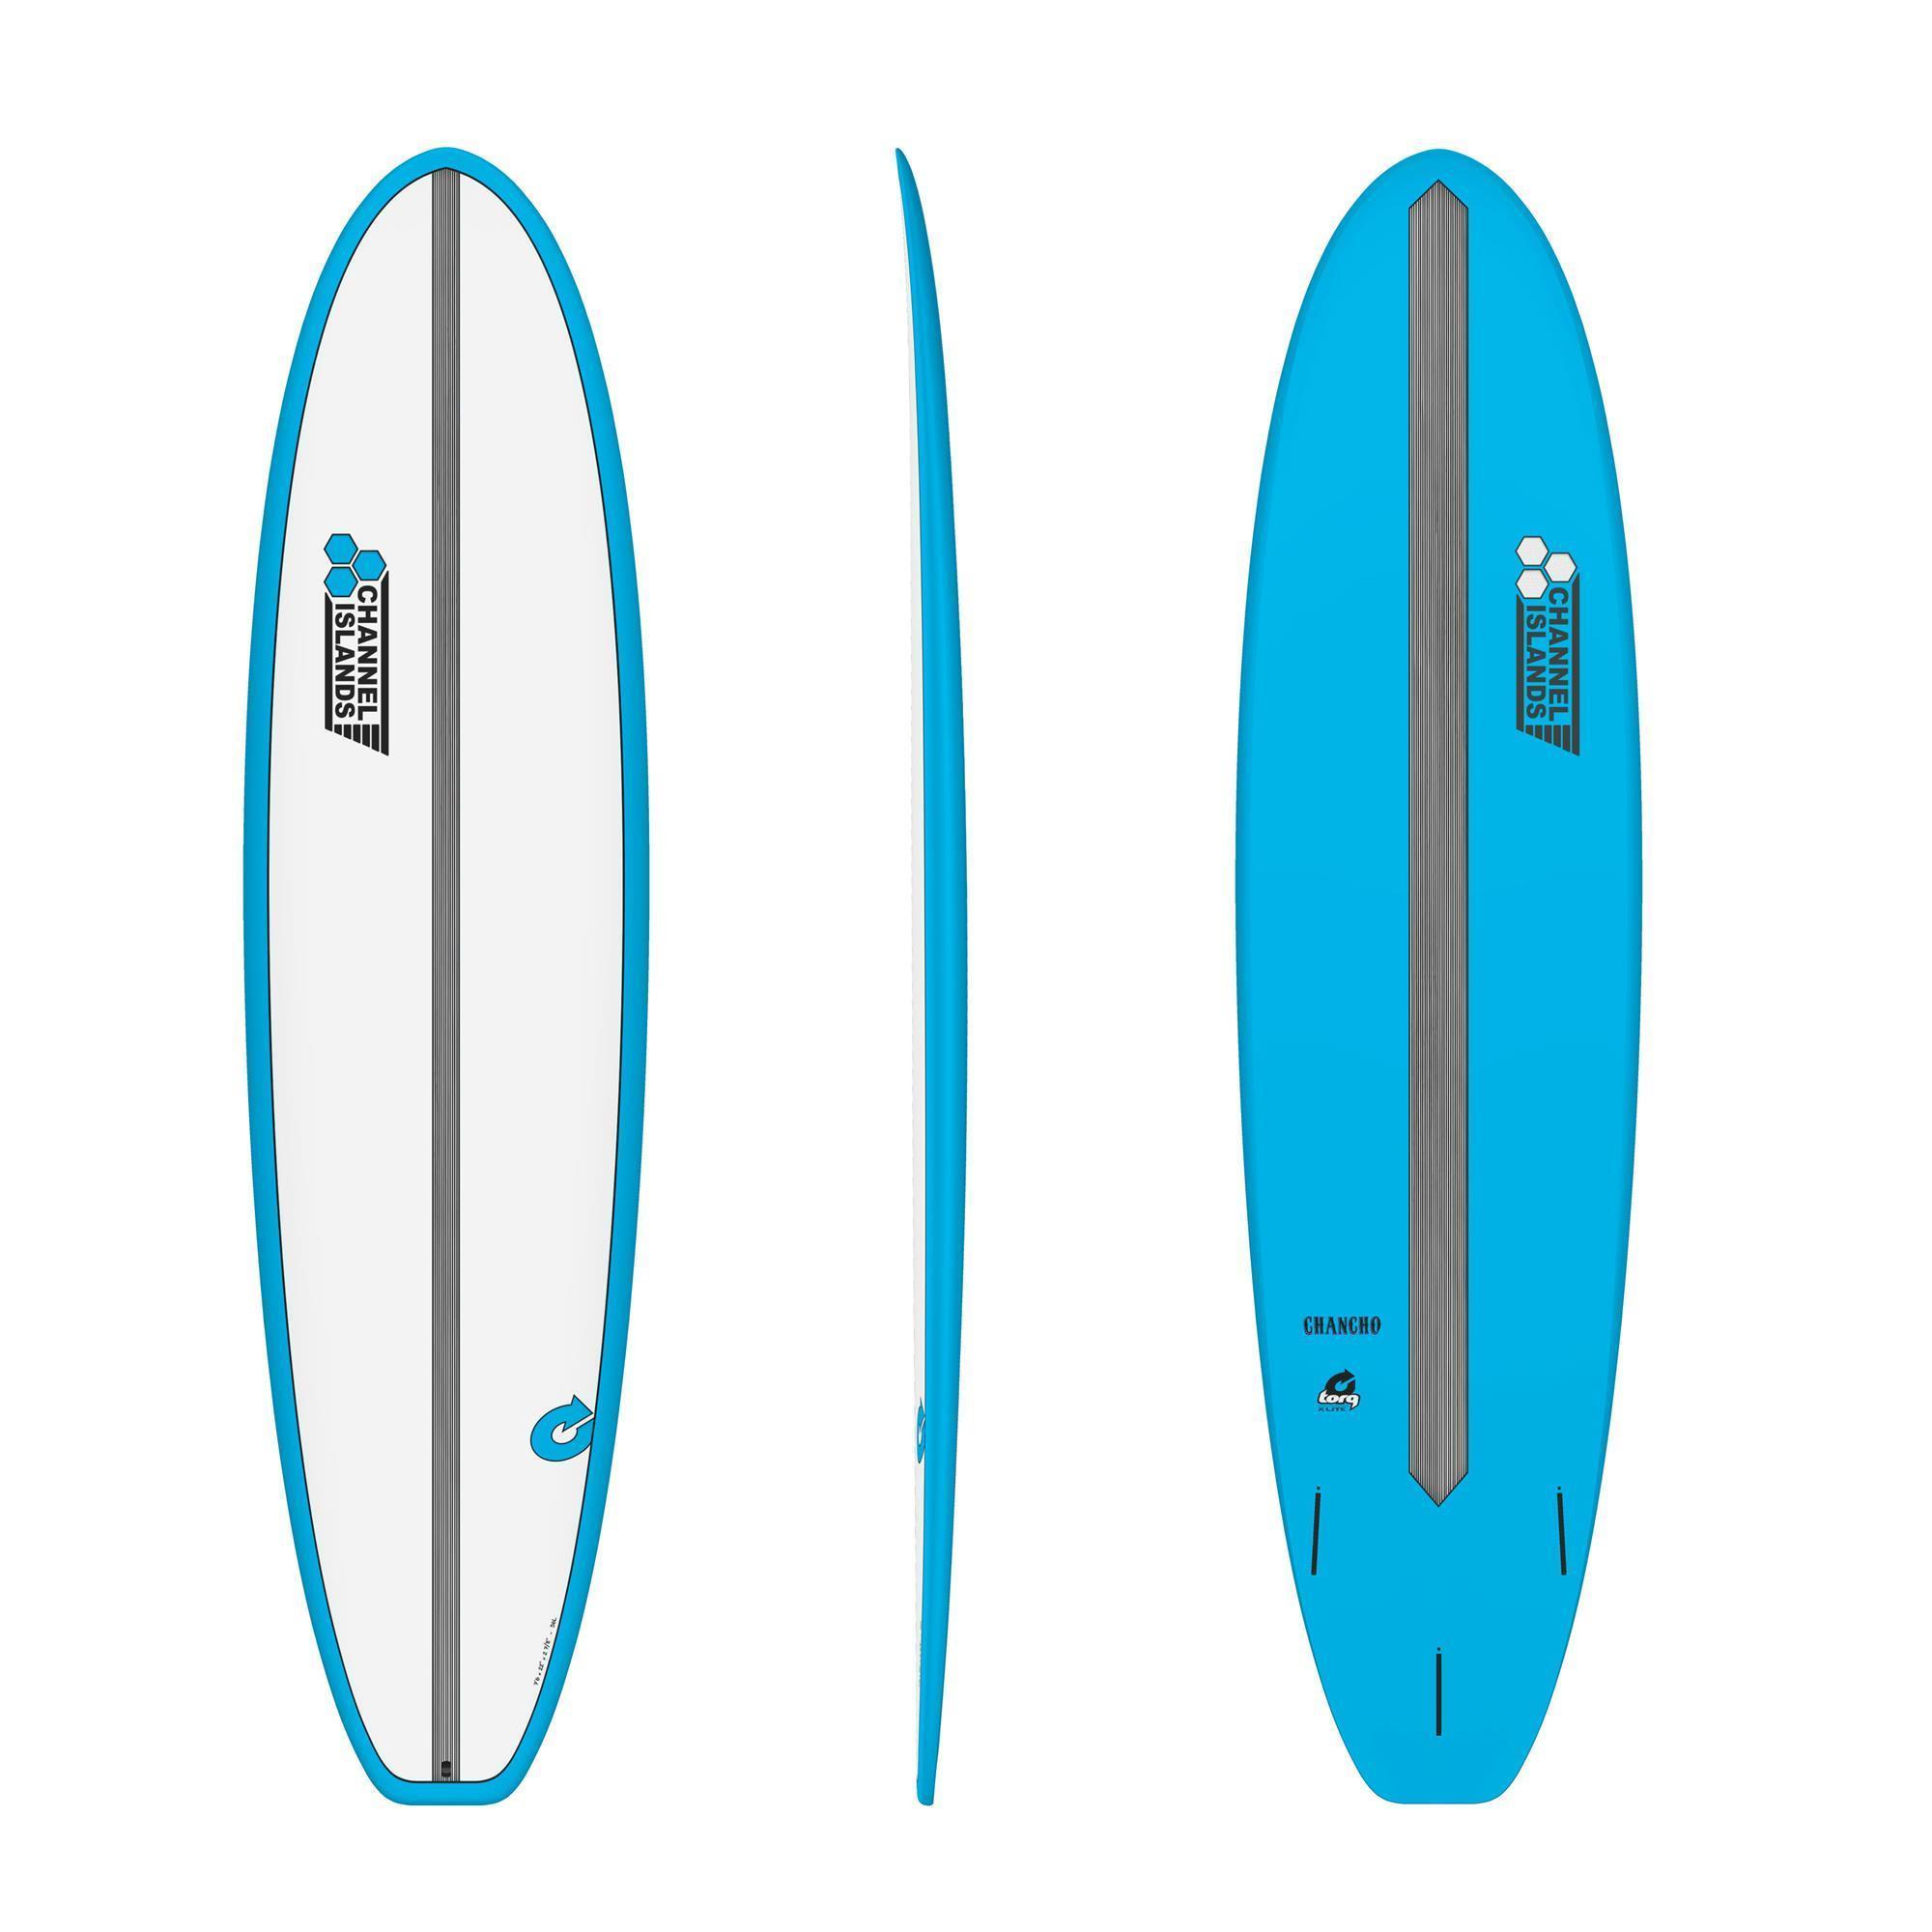 Surfboard CHANNEL ISLANDS X-lite Chancho 7.0 Blau